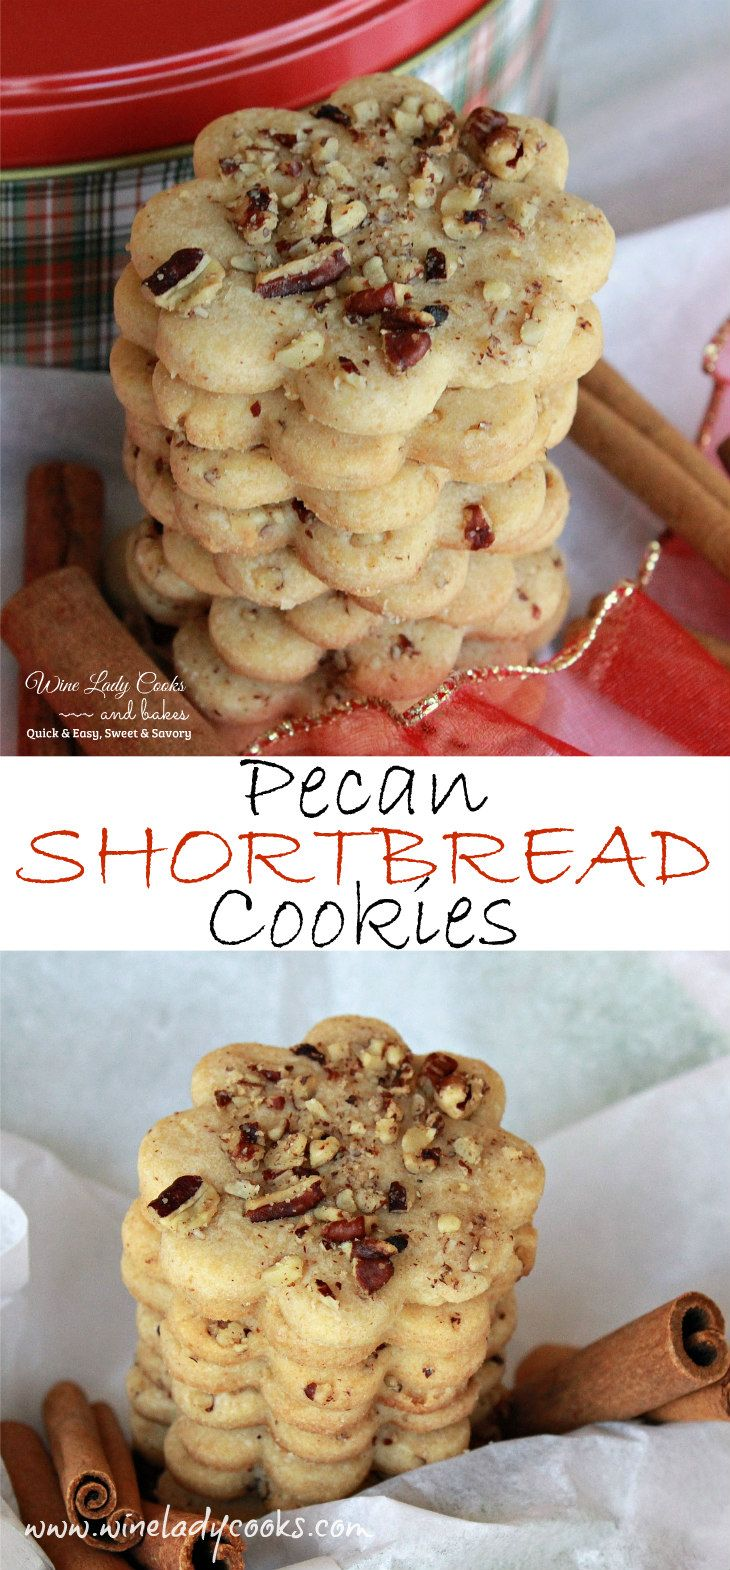 Pecan Shortbread Cookies, very easy to make for cookie exchanges and always a favorite holiday cookie